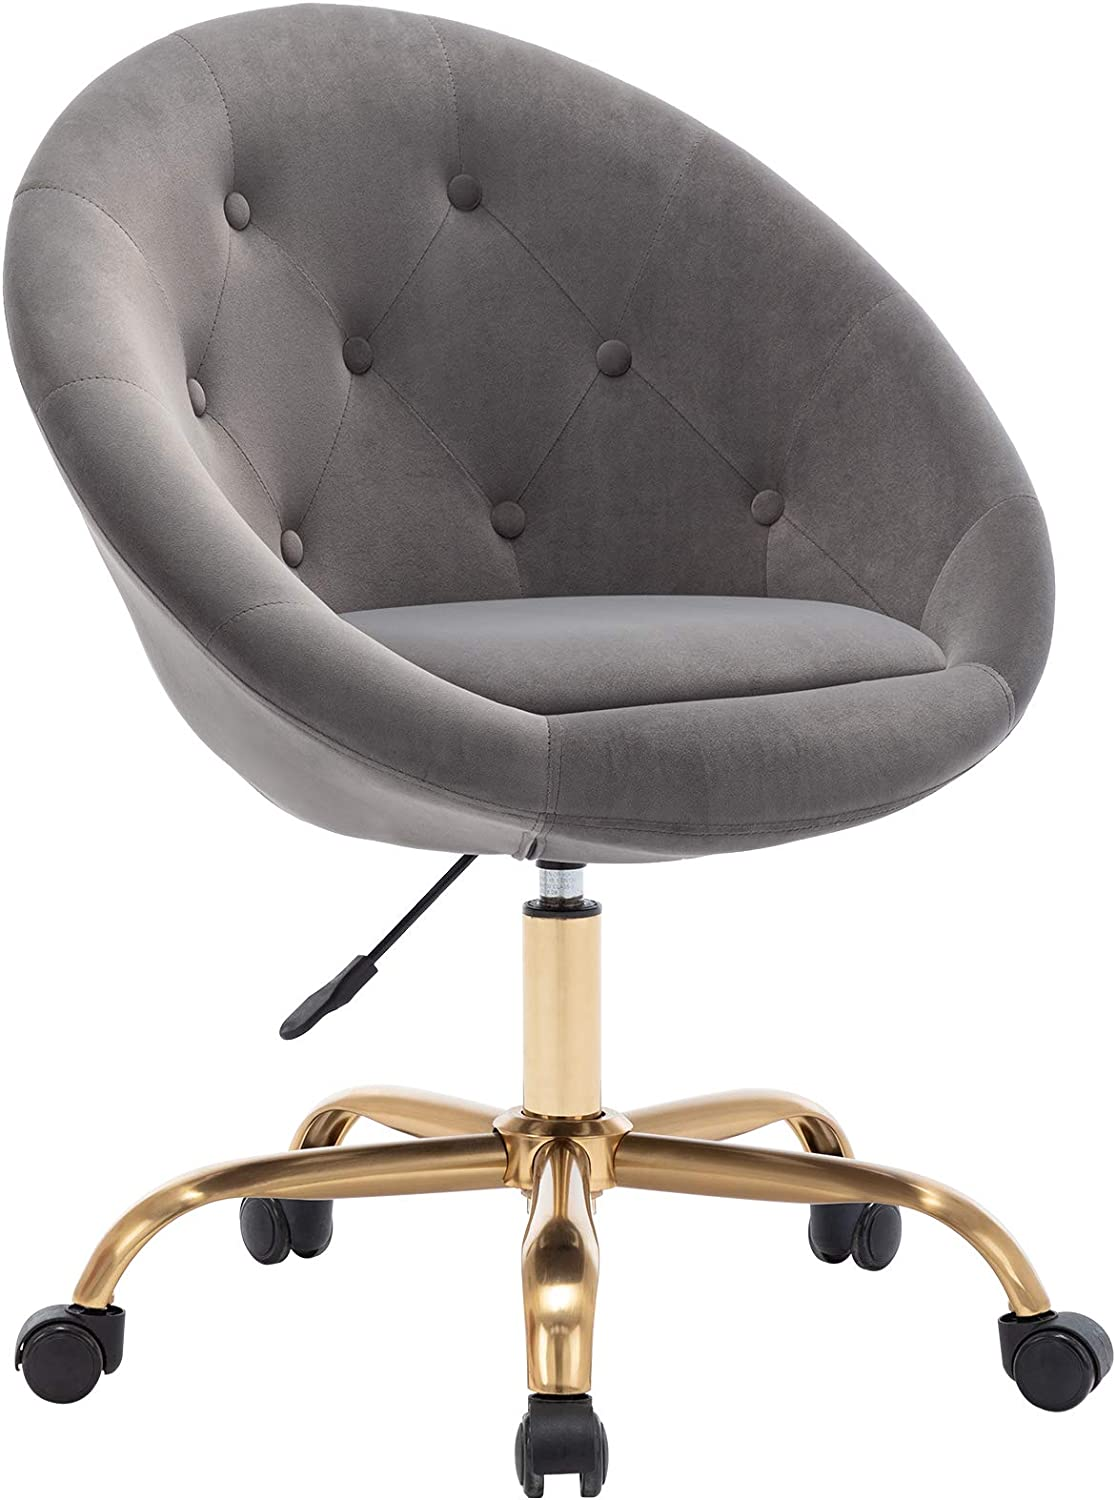 Duhome Modern Home Office Chair Desk Chair Task Computer Chair with Wheels Swivel Chair Vanity Chair Makeup Chair Height Adjustable Chairs Velvet Button Tufted with Wheels and Gold Metal Base (Grey)